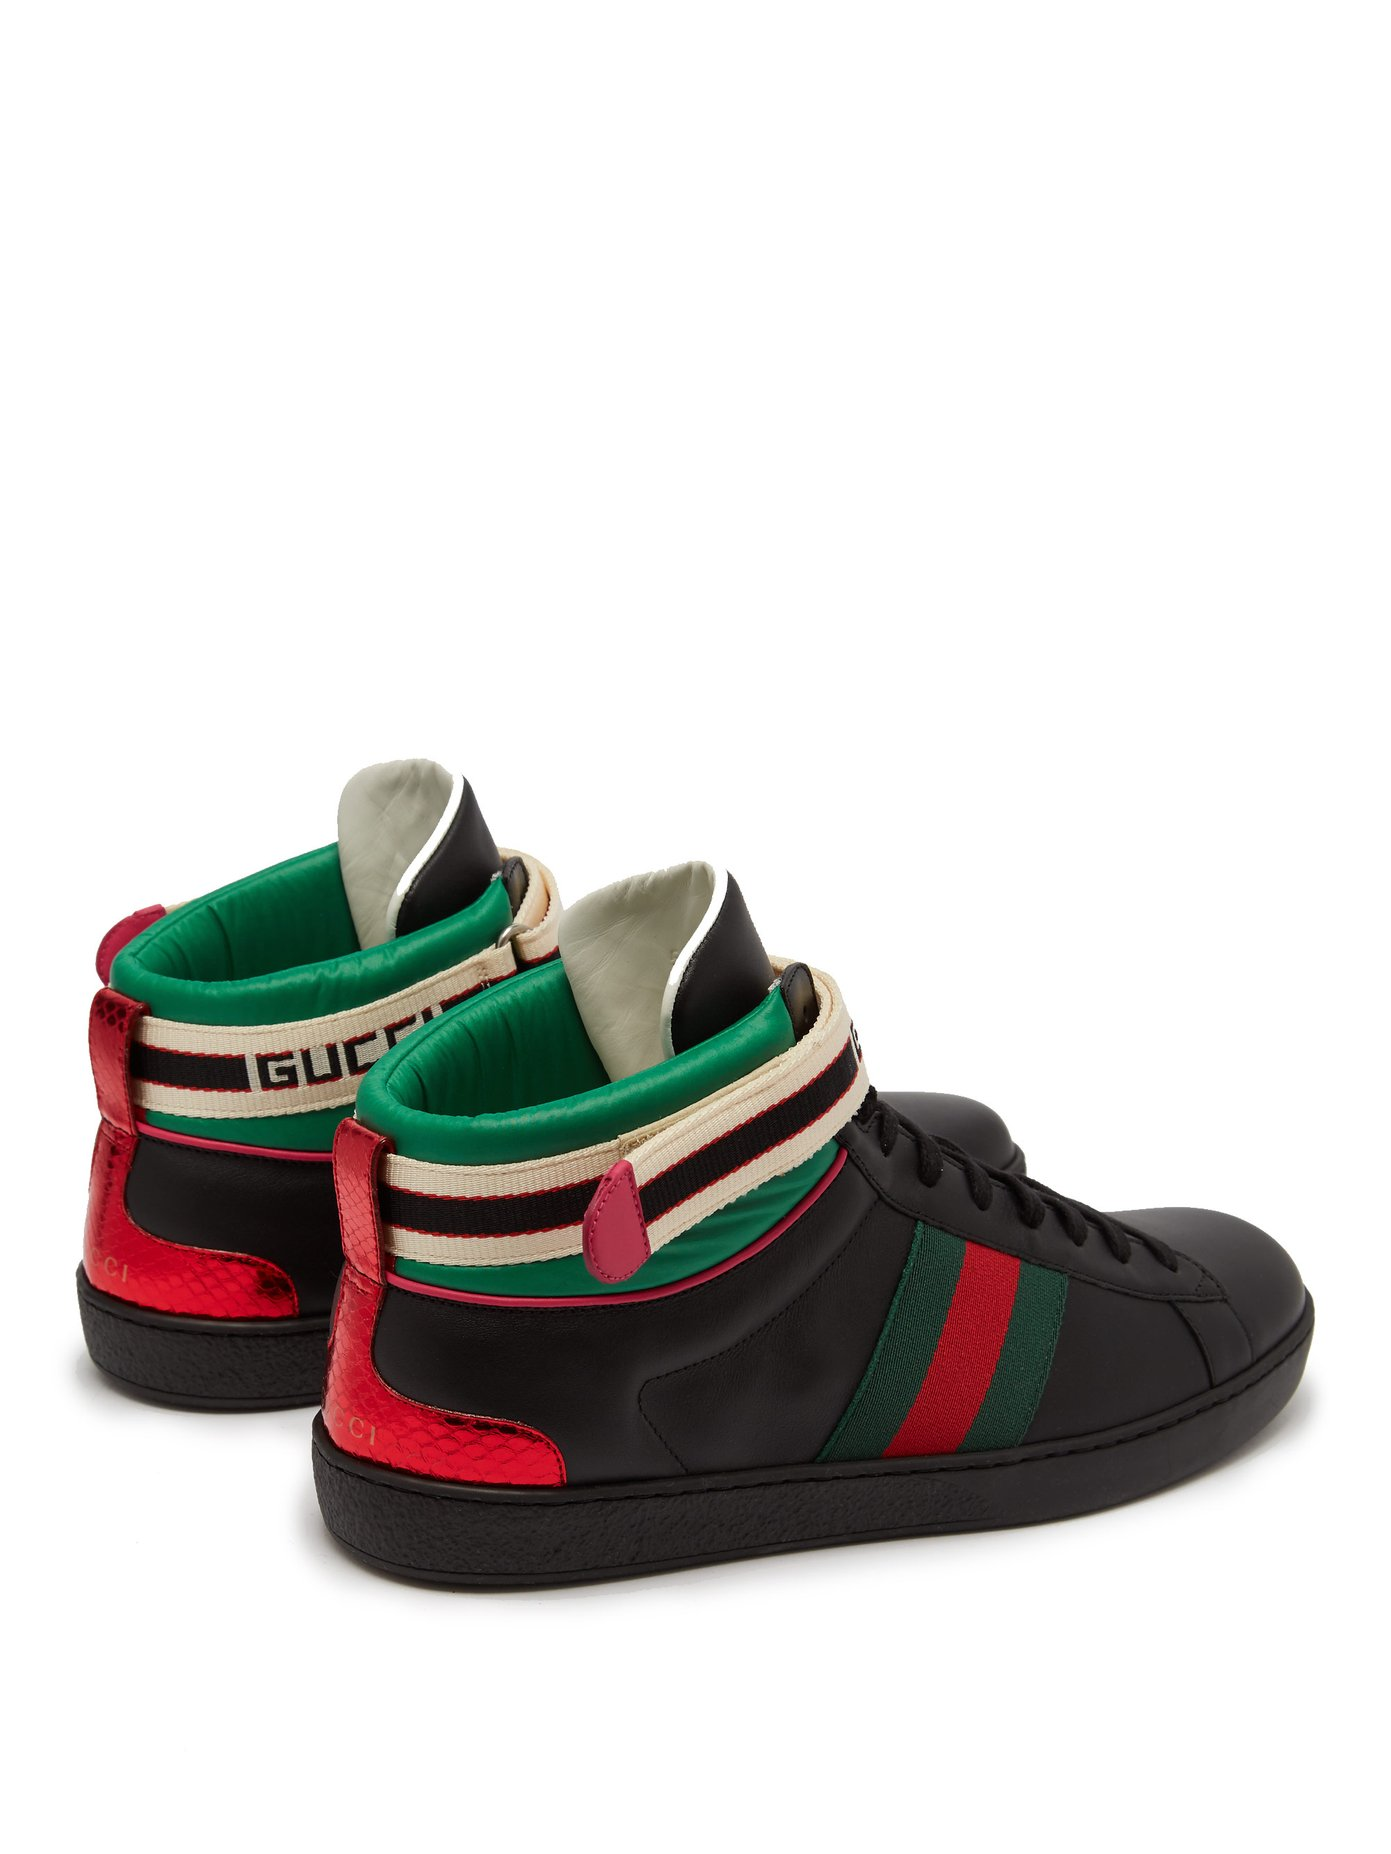 e0a00fbd426 Gucci New Ace Trainers Unisex Sneakers – Zwart/Rood/Groen